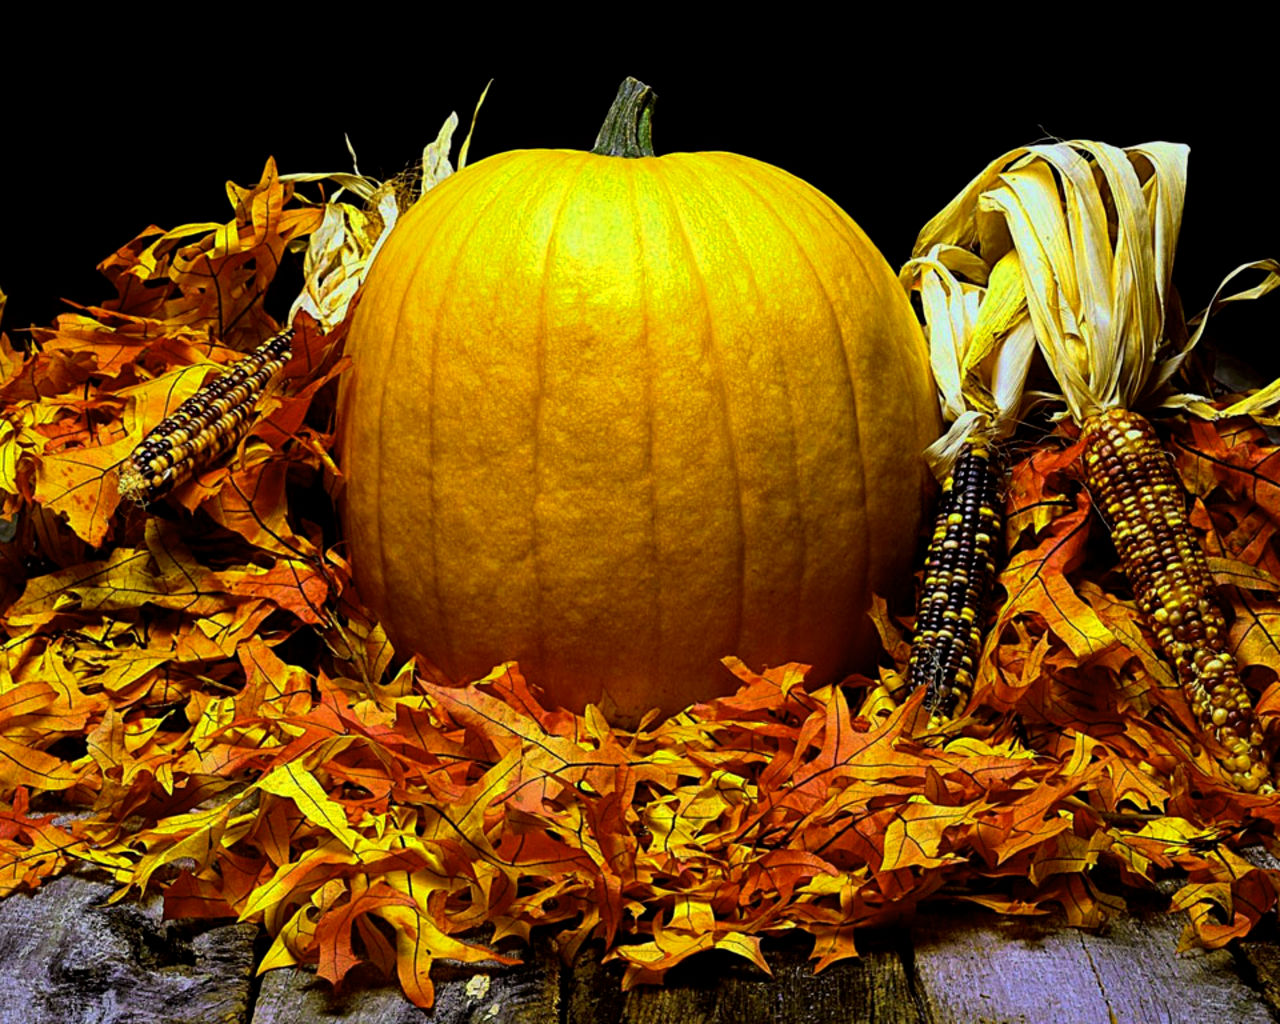 Fall Leaves And Pumpkins Wallpaper   tianyihengfeng Free Download